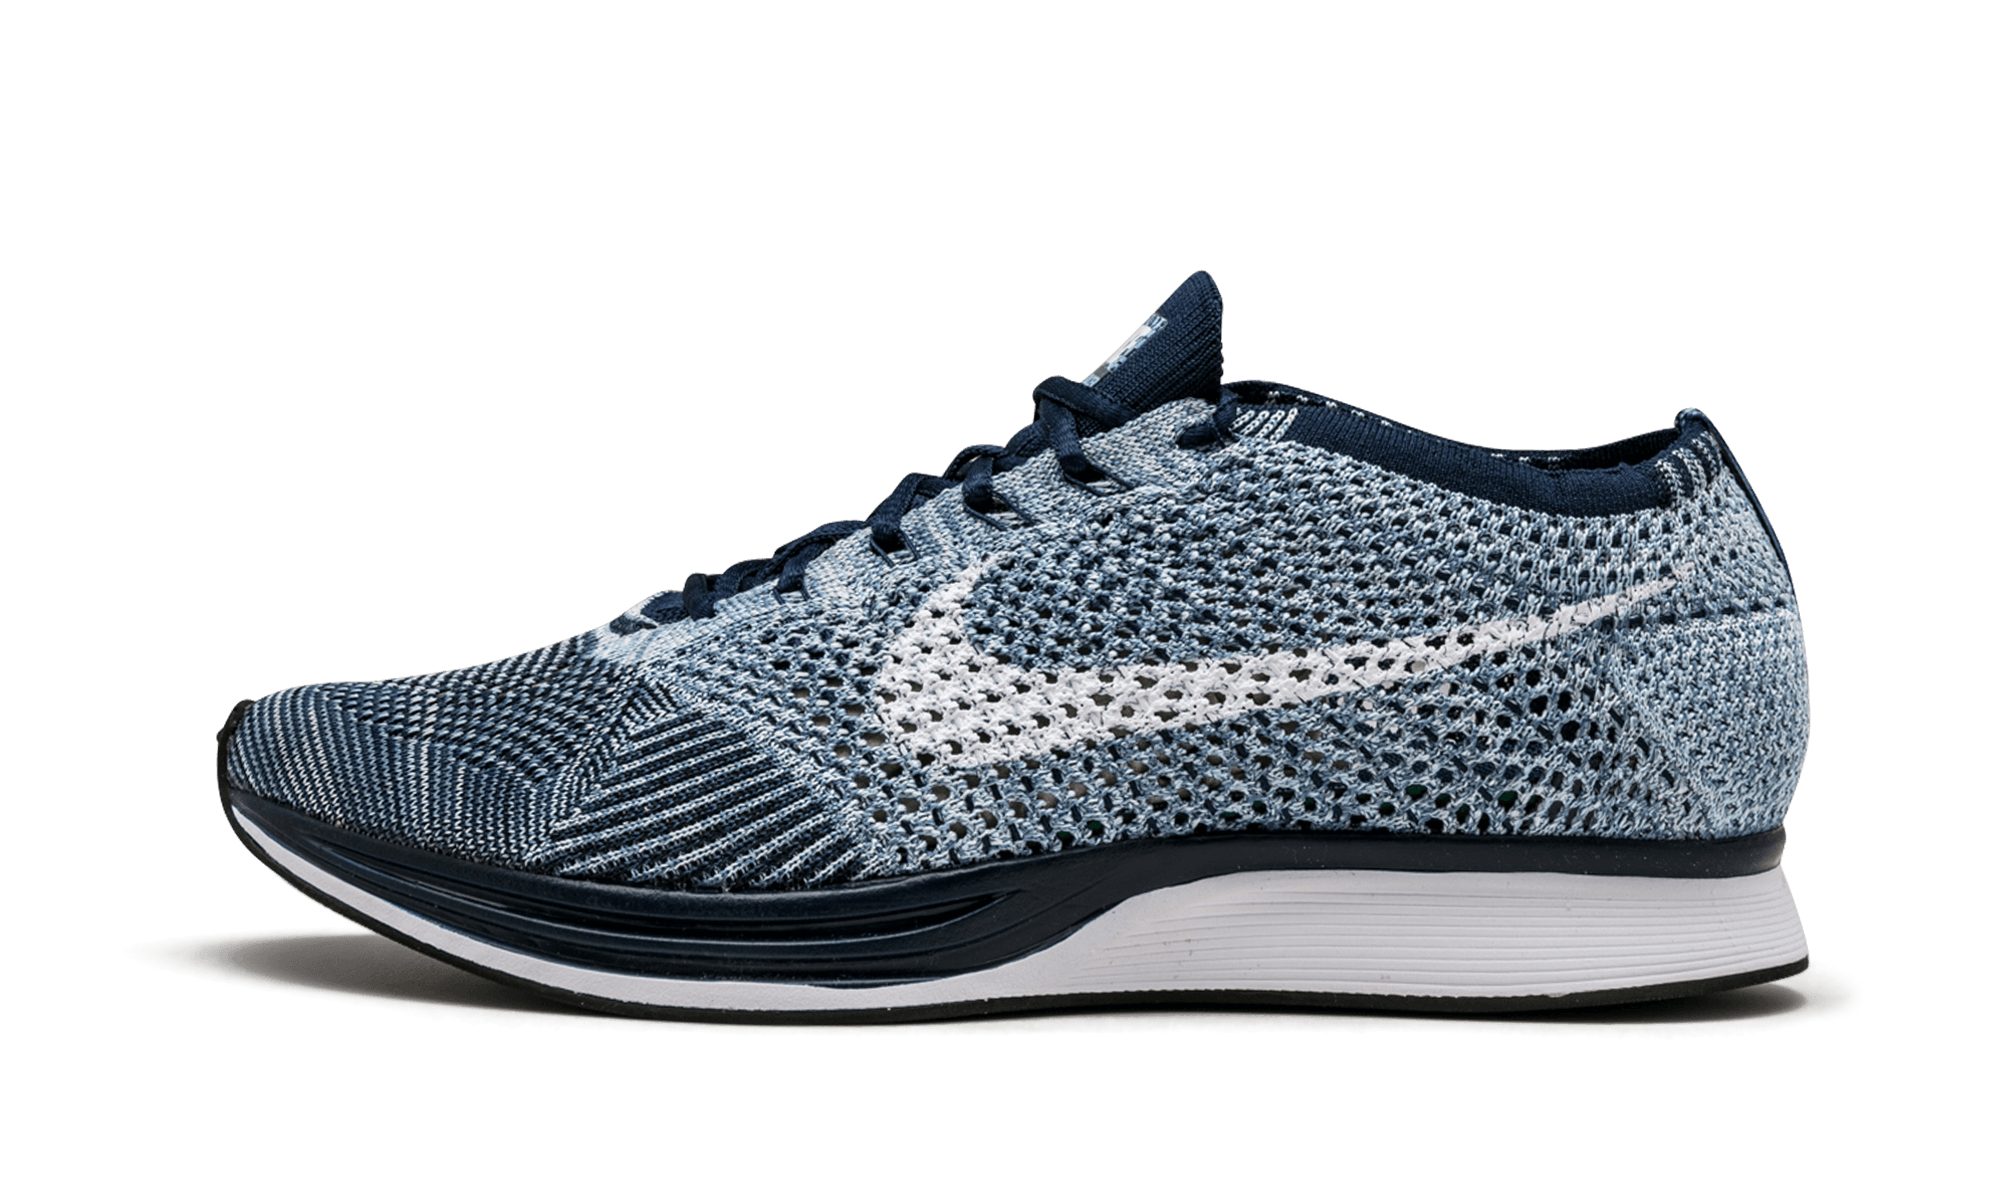 Découvrez Populaire Nike Air Zoom Mariah Flyknit Femme Chaussure Pas Cher Royer3601919